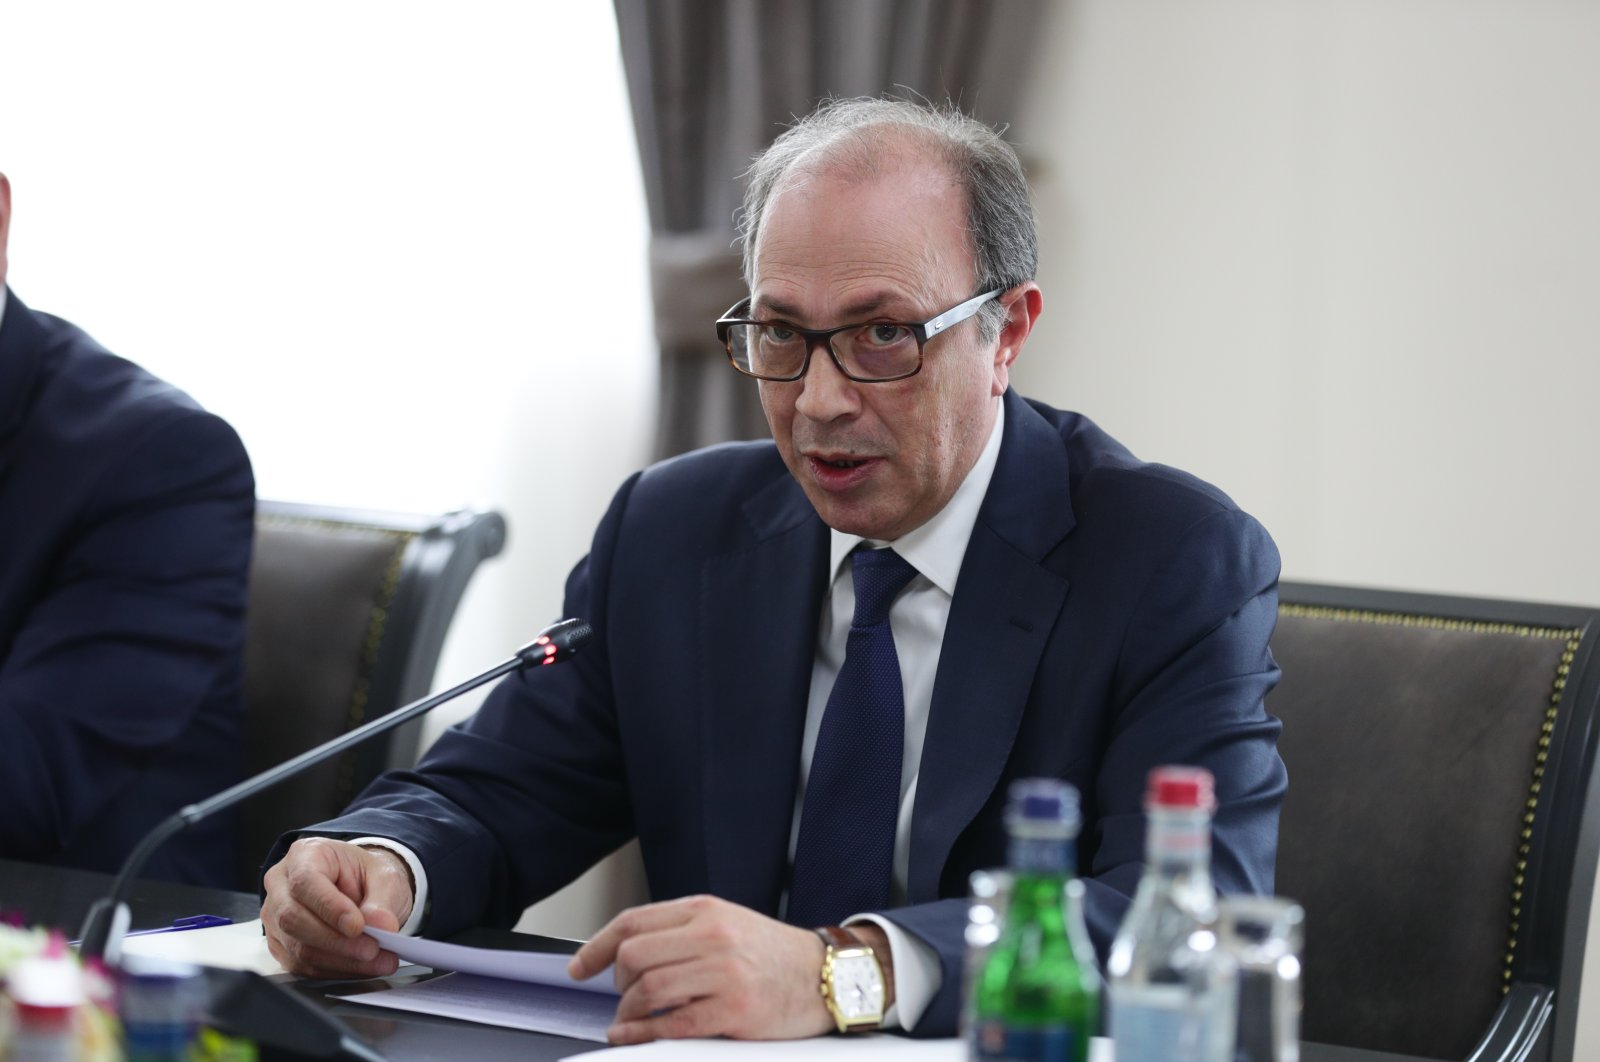 Armenian Foreign Minister Ara Ayvazyan is seen in this photo taken during a meeting with his counterpart Sergey Lavrov in Russia's Moscow on May 6, 2021 (Russian Ministry of Foreign Affairs Media Service via AA - File)